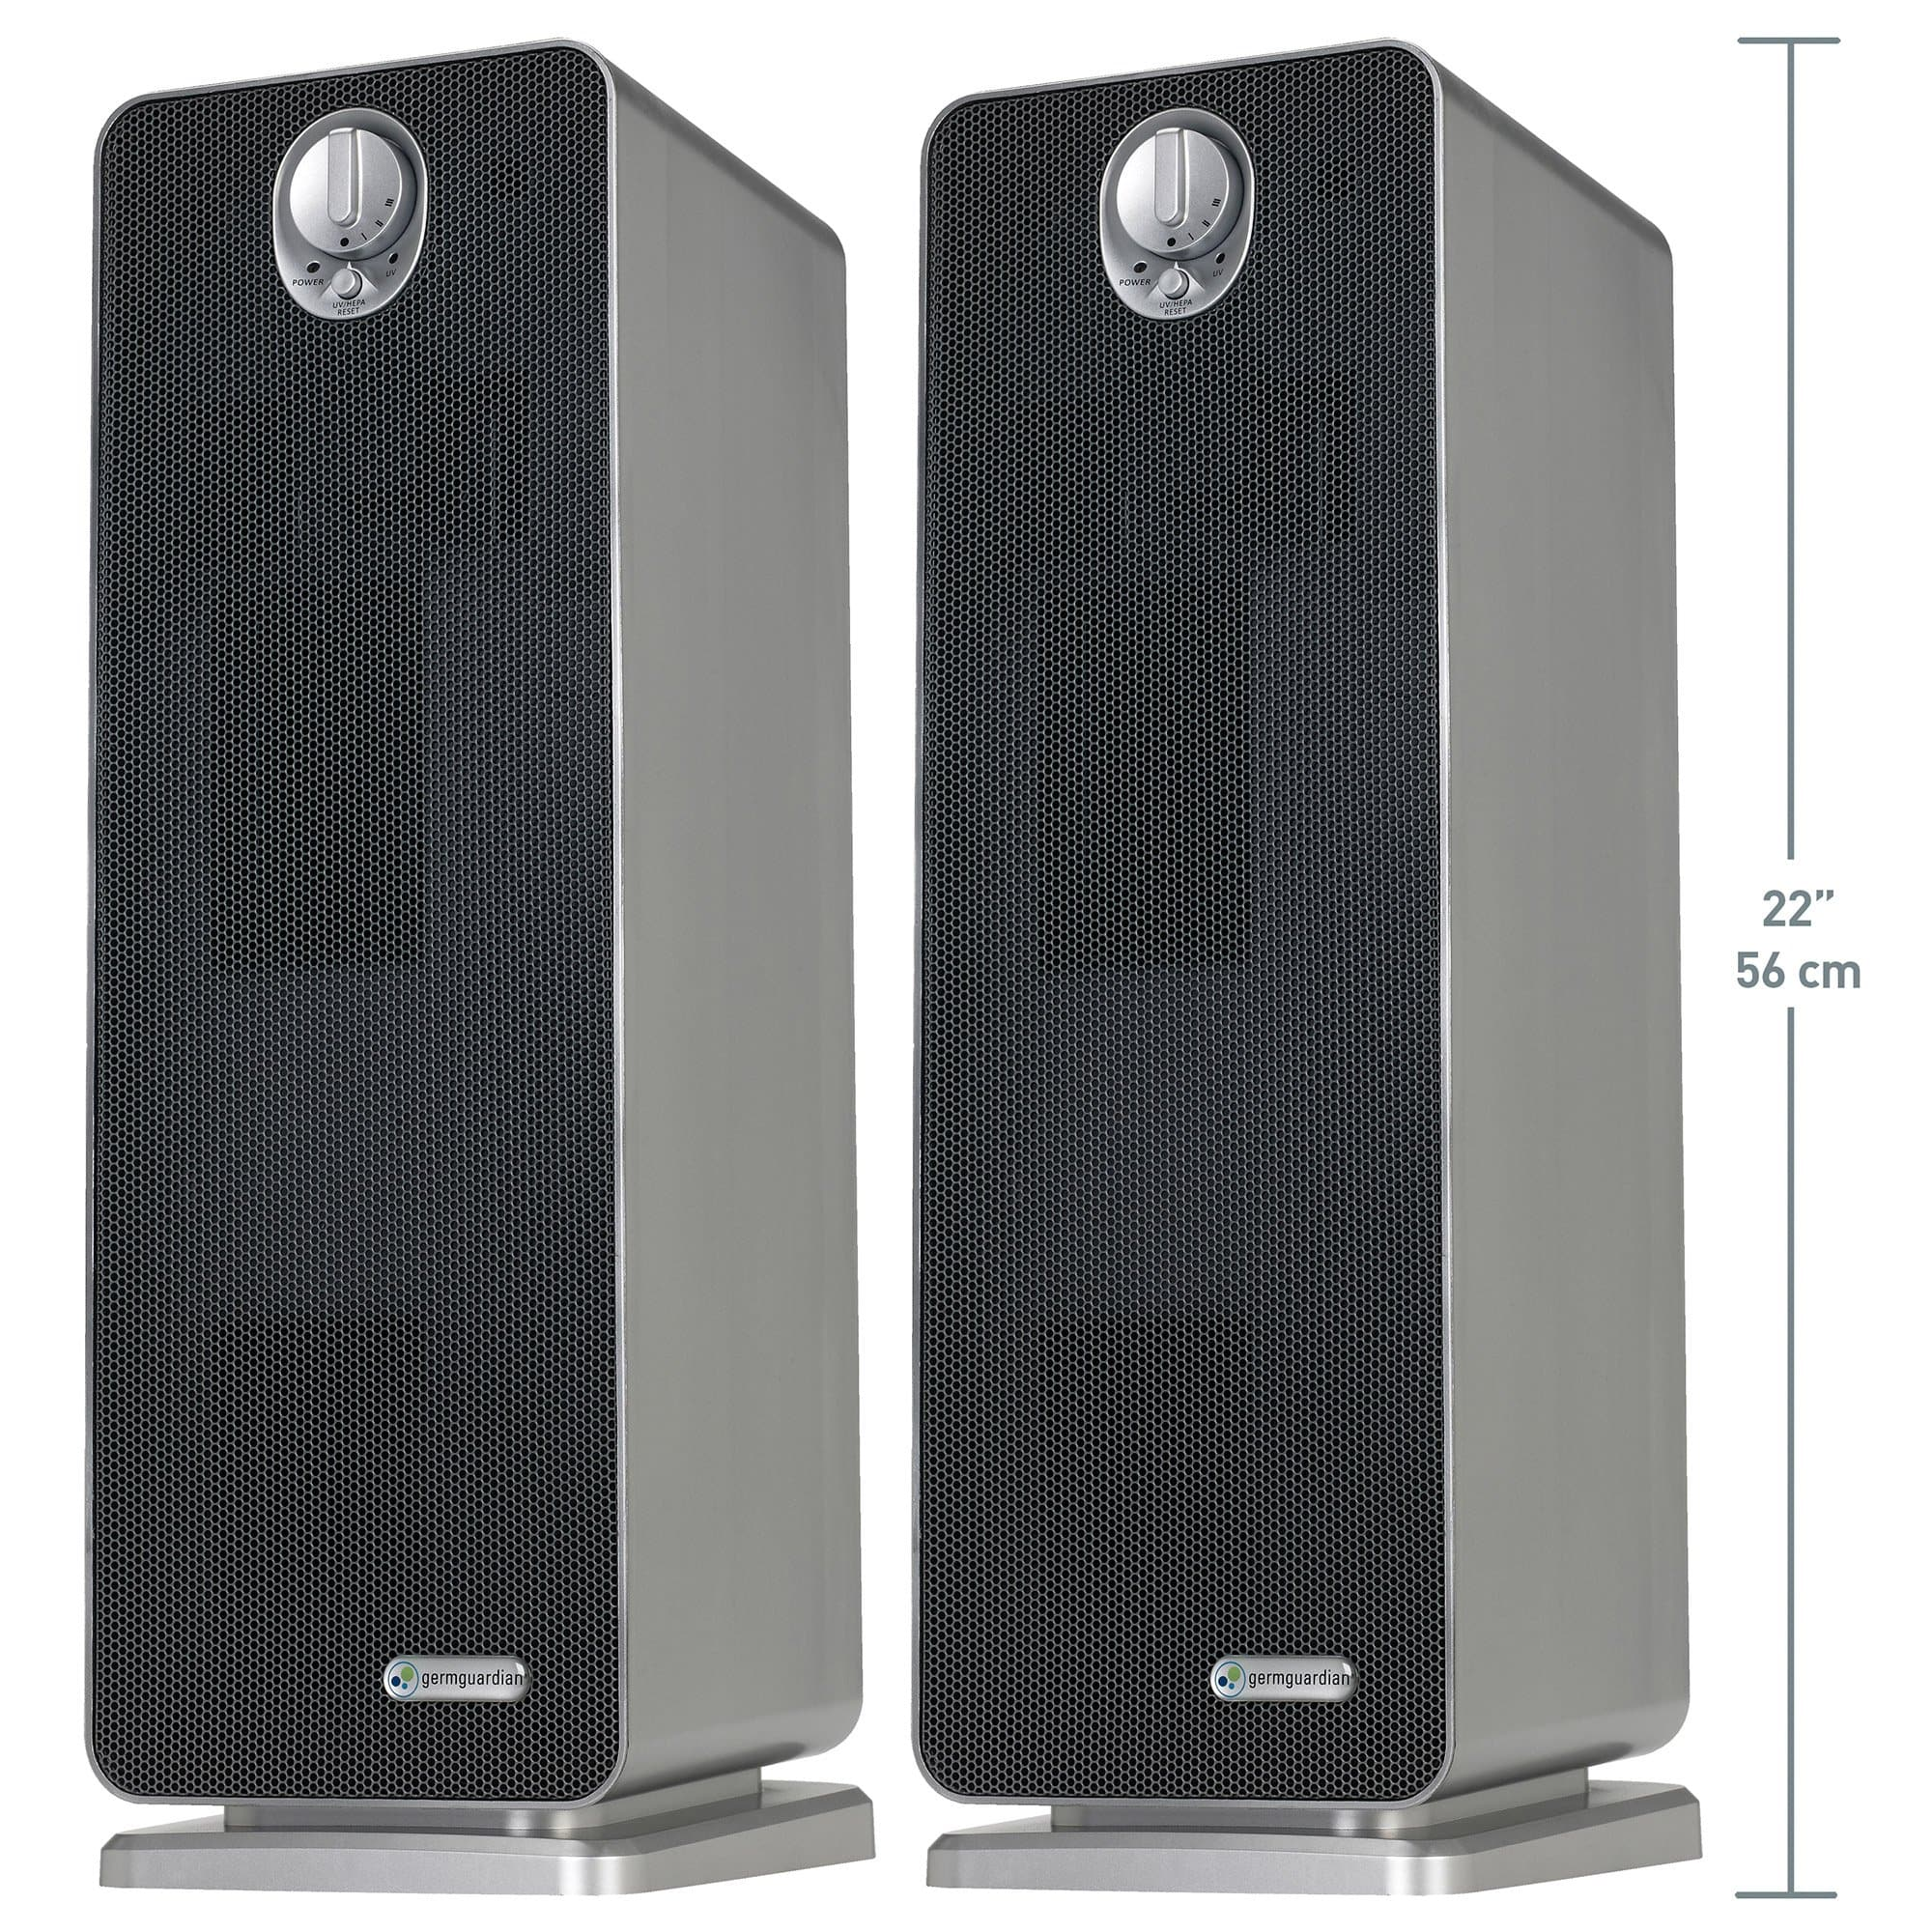 "GermGuardian 22"" True HEPA Air Purifier, with UV Sanitizer & Odor Reduction, 2-pack - FLJ CORPORATIONS"